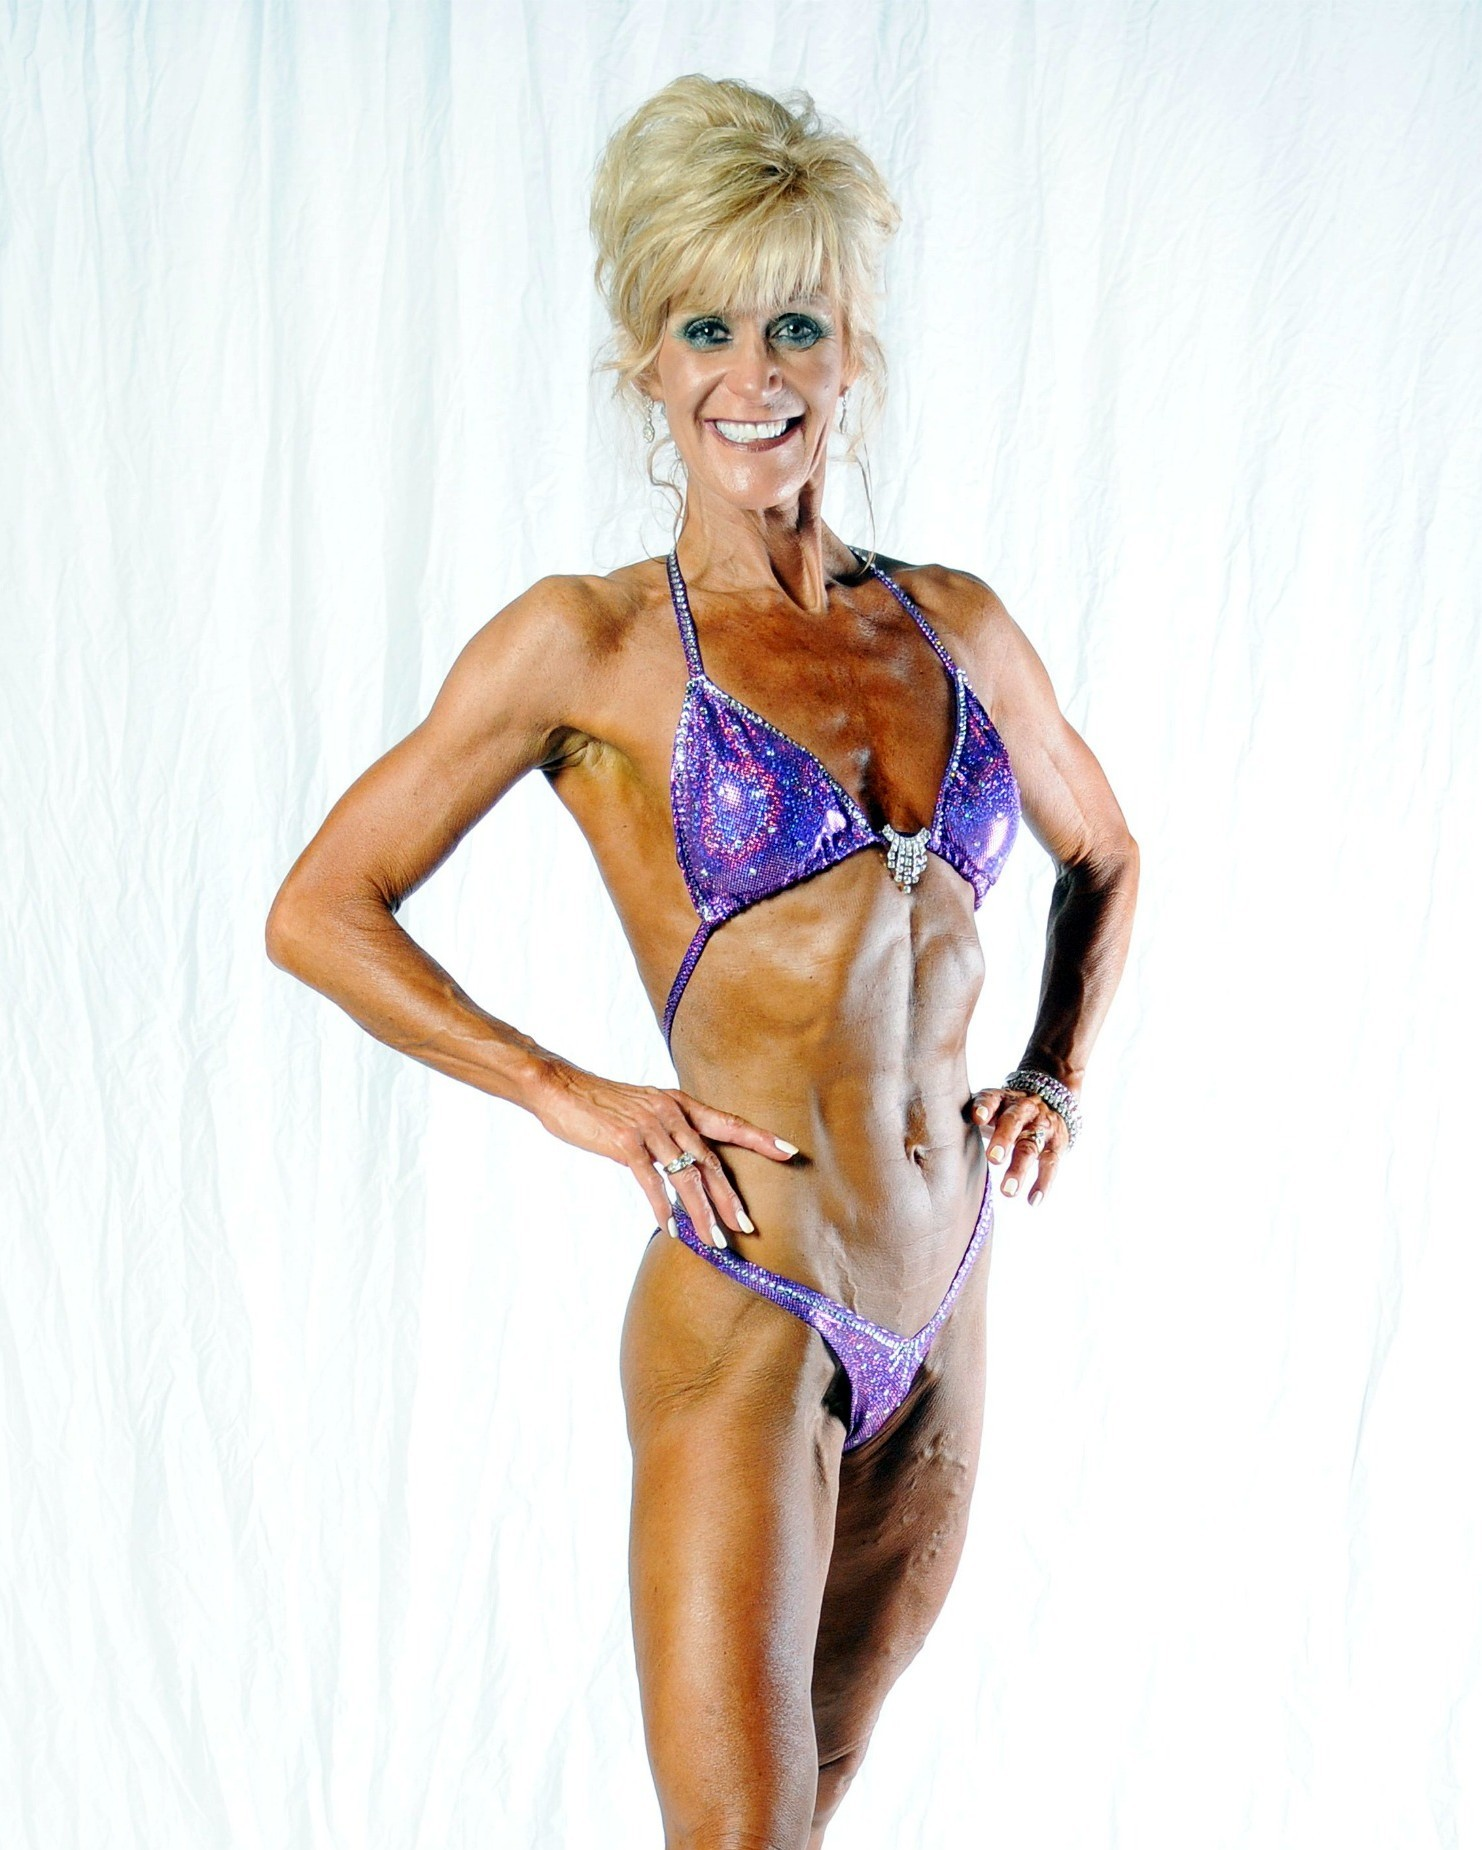 Diane Holder - Figure Athlete